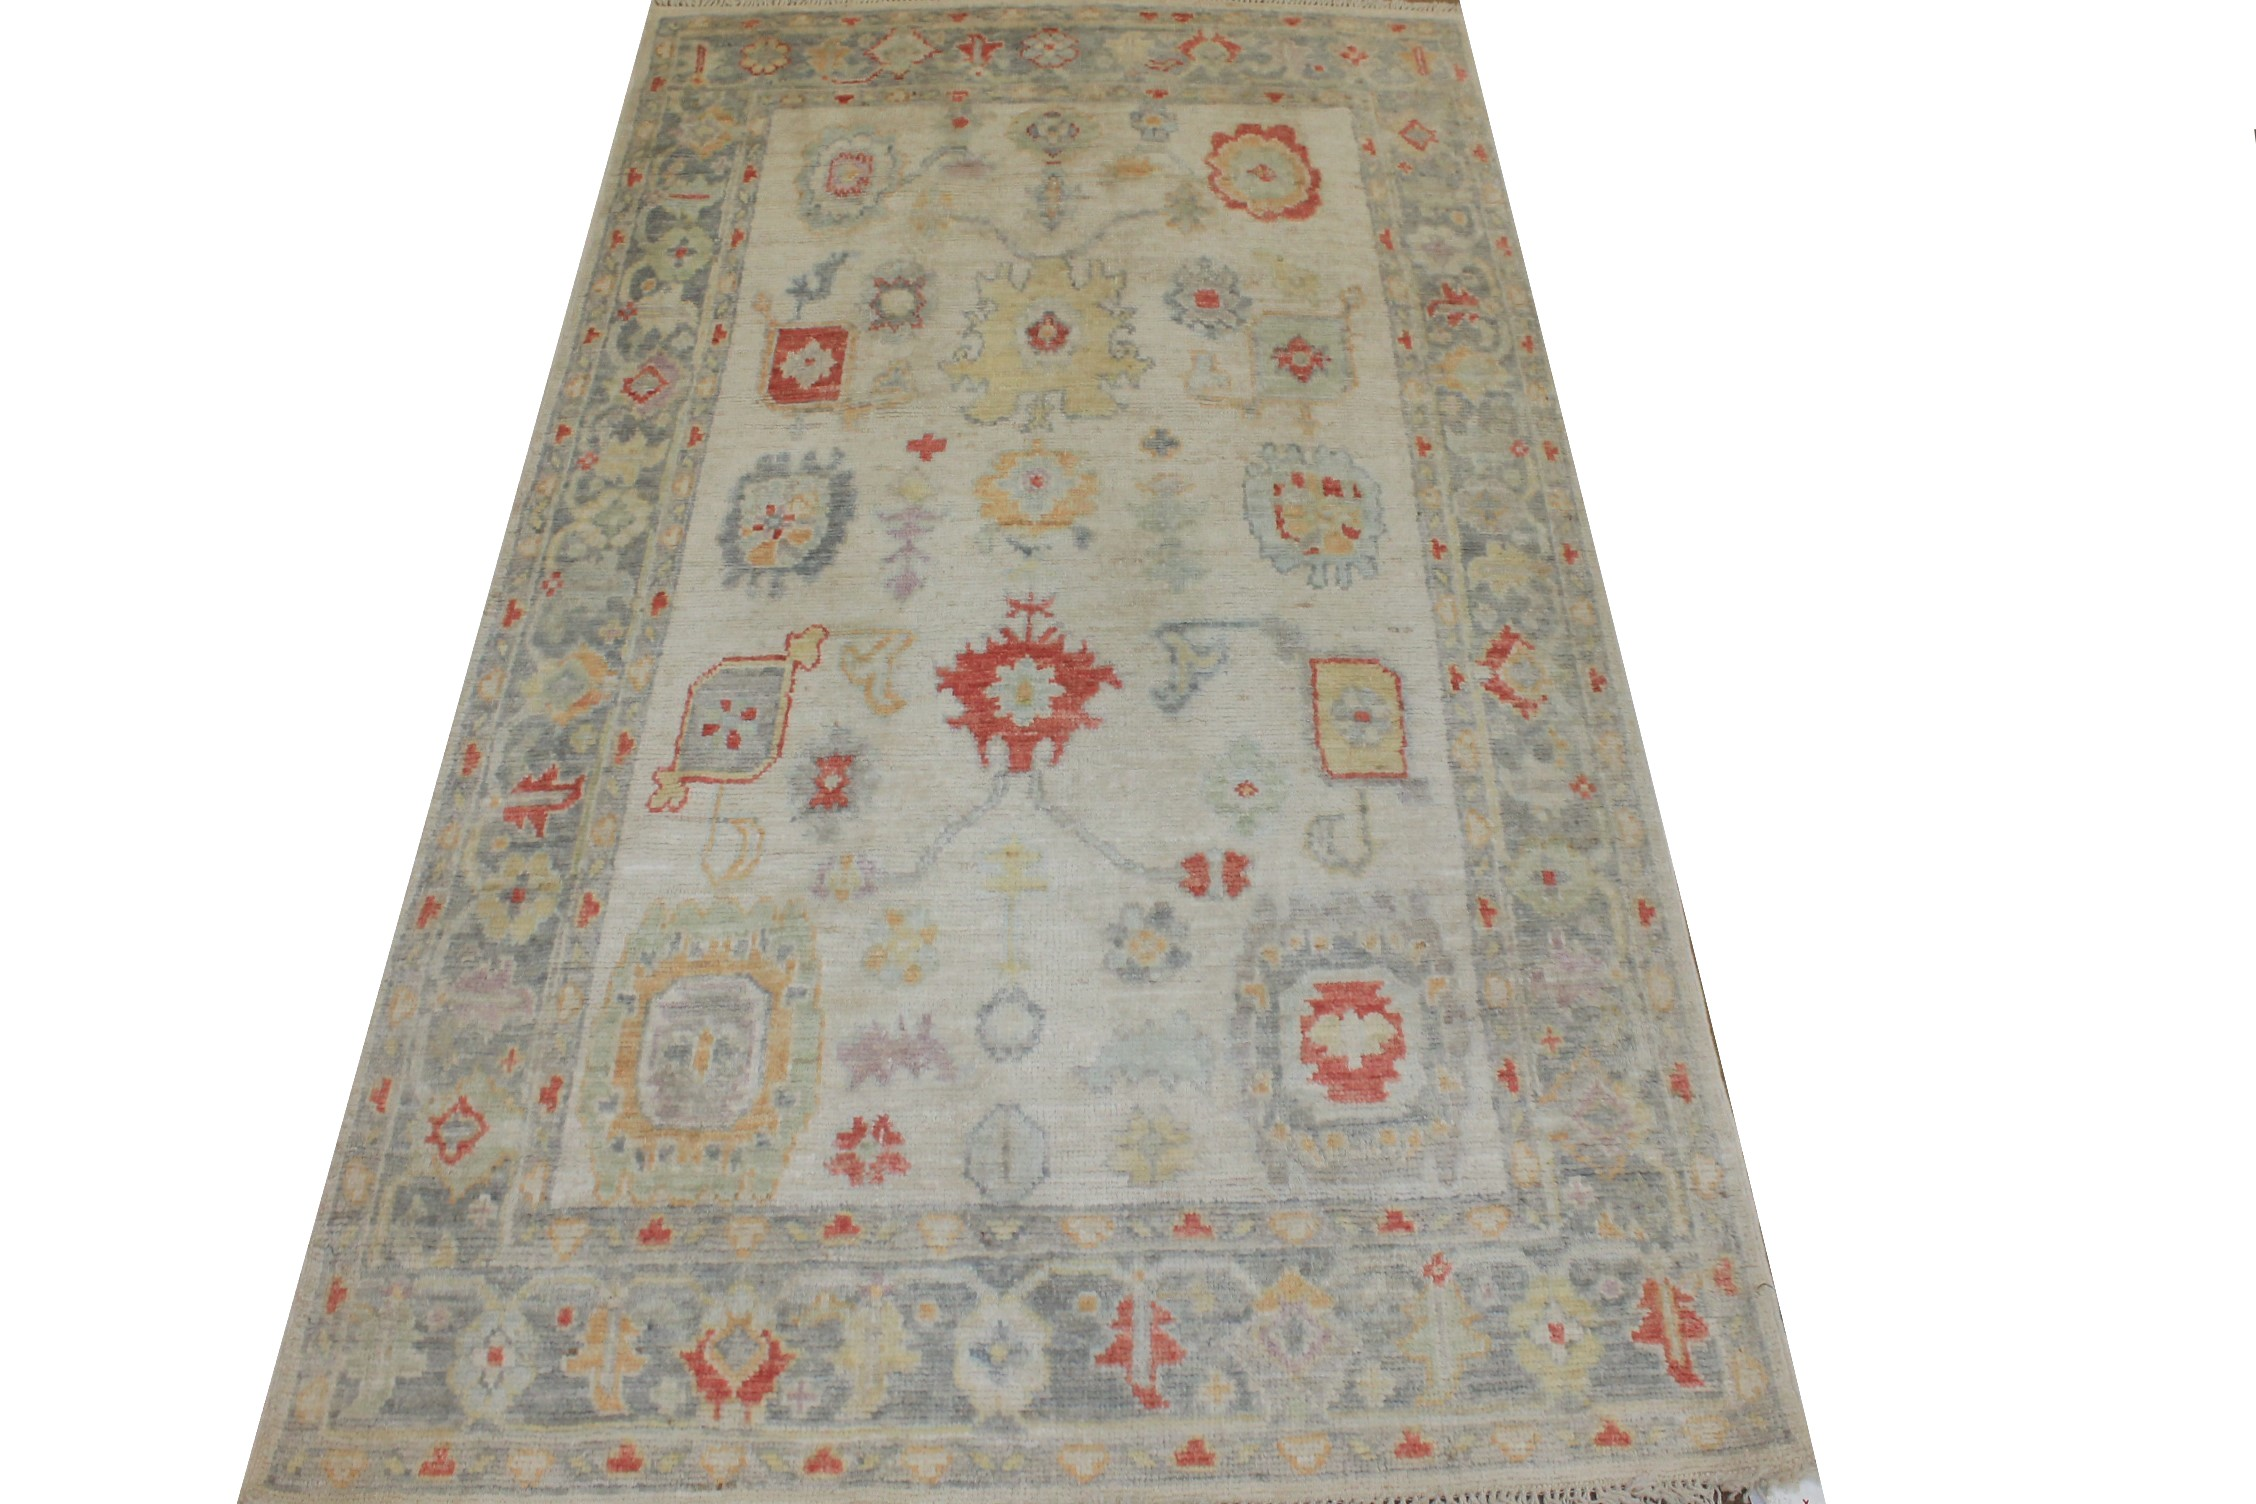 4x6 Oushak Hand Knotted Wool Area Rug - MR025420